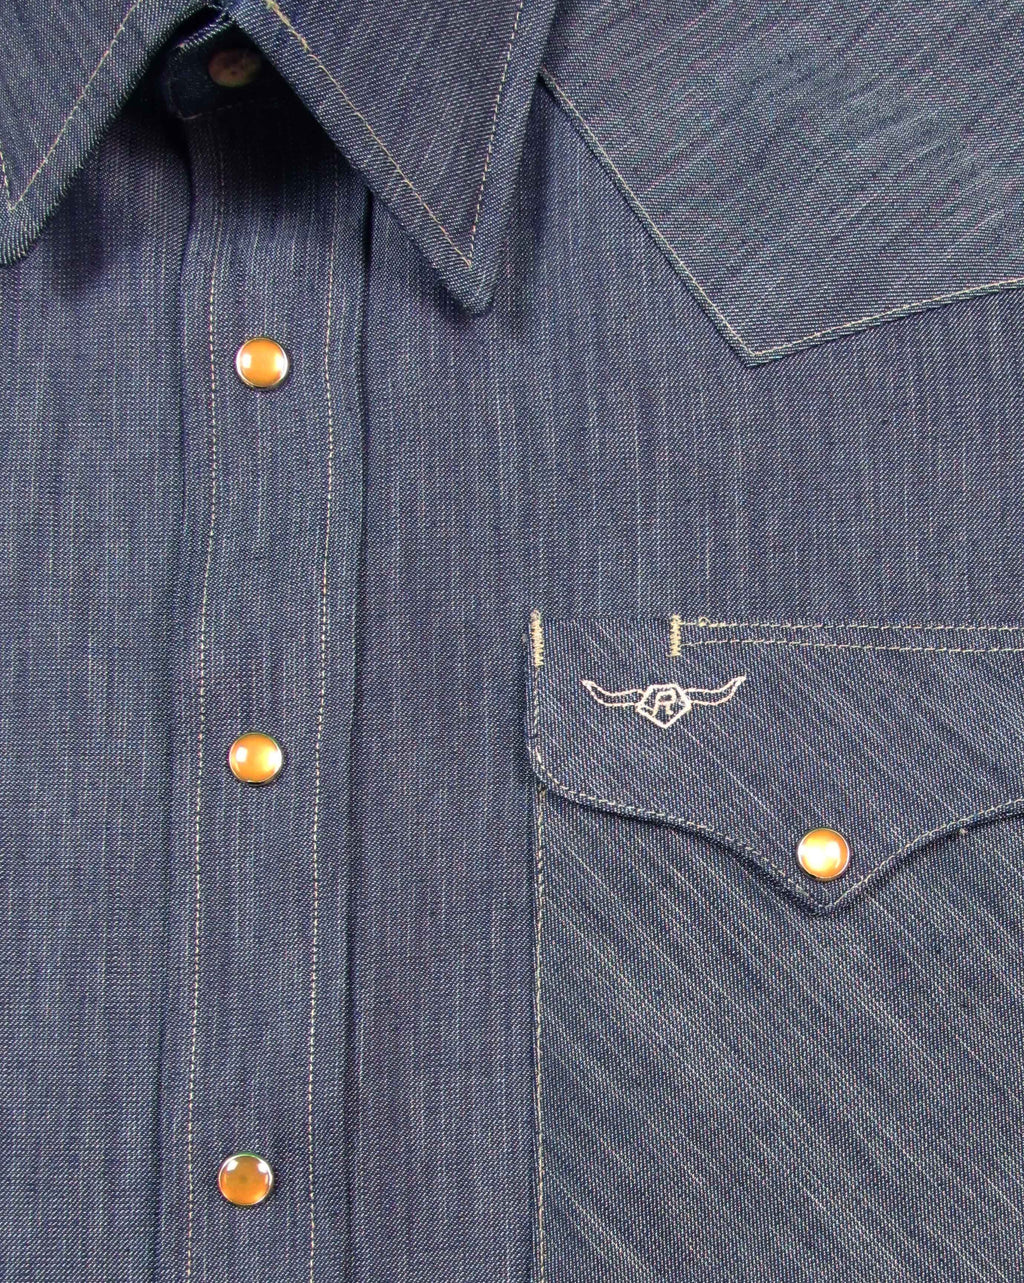 Solid - Indigo Tencel Chambray - Long Sleeve - Snaps